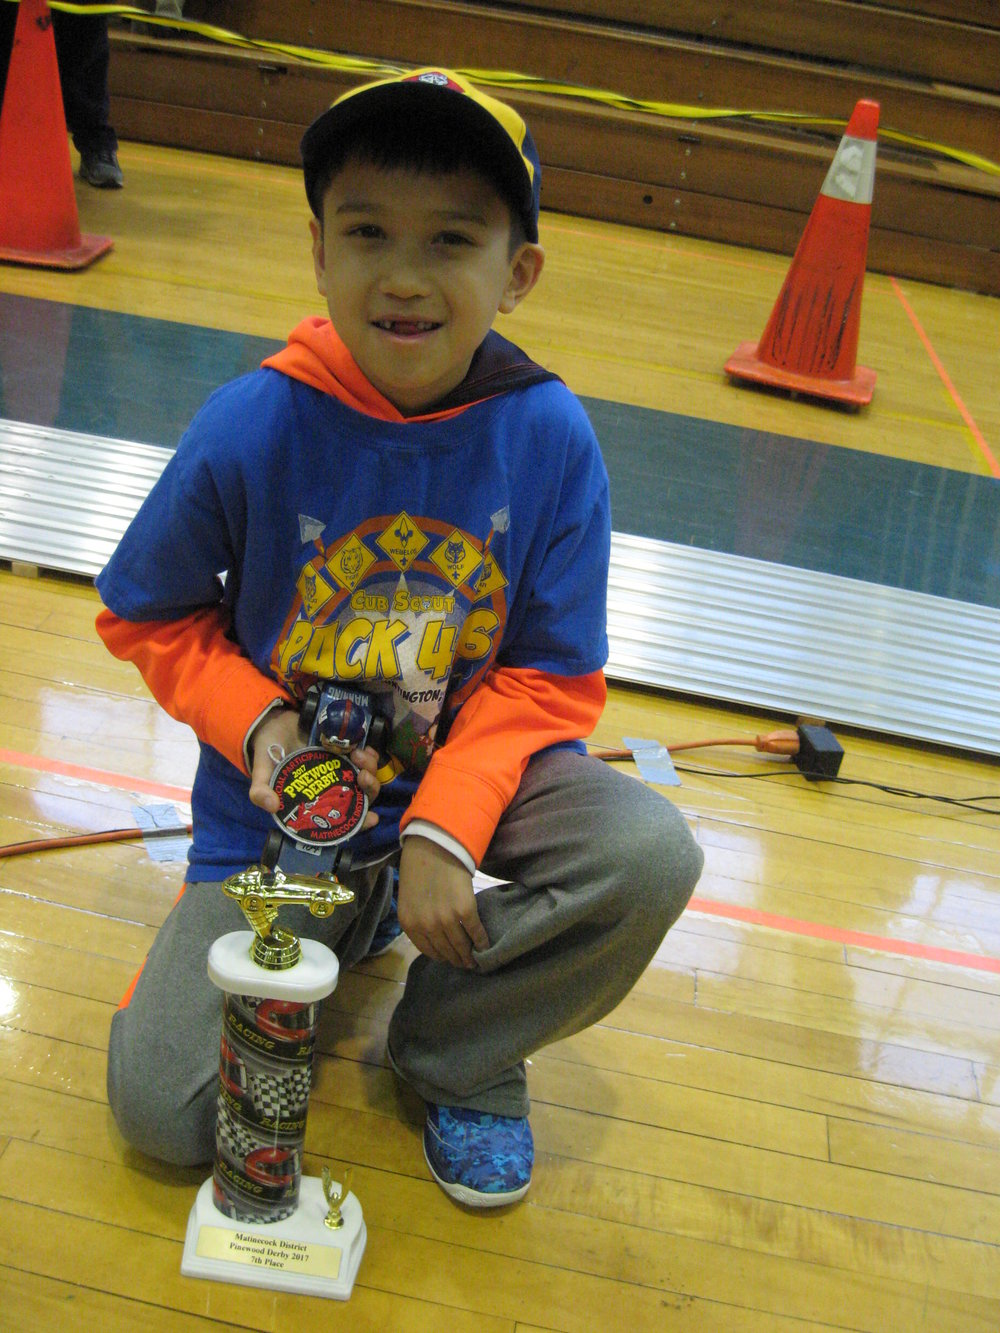 Seventh-place winner Christopher R., of South Huntington's Pack 406